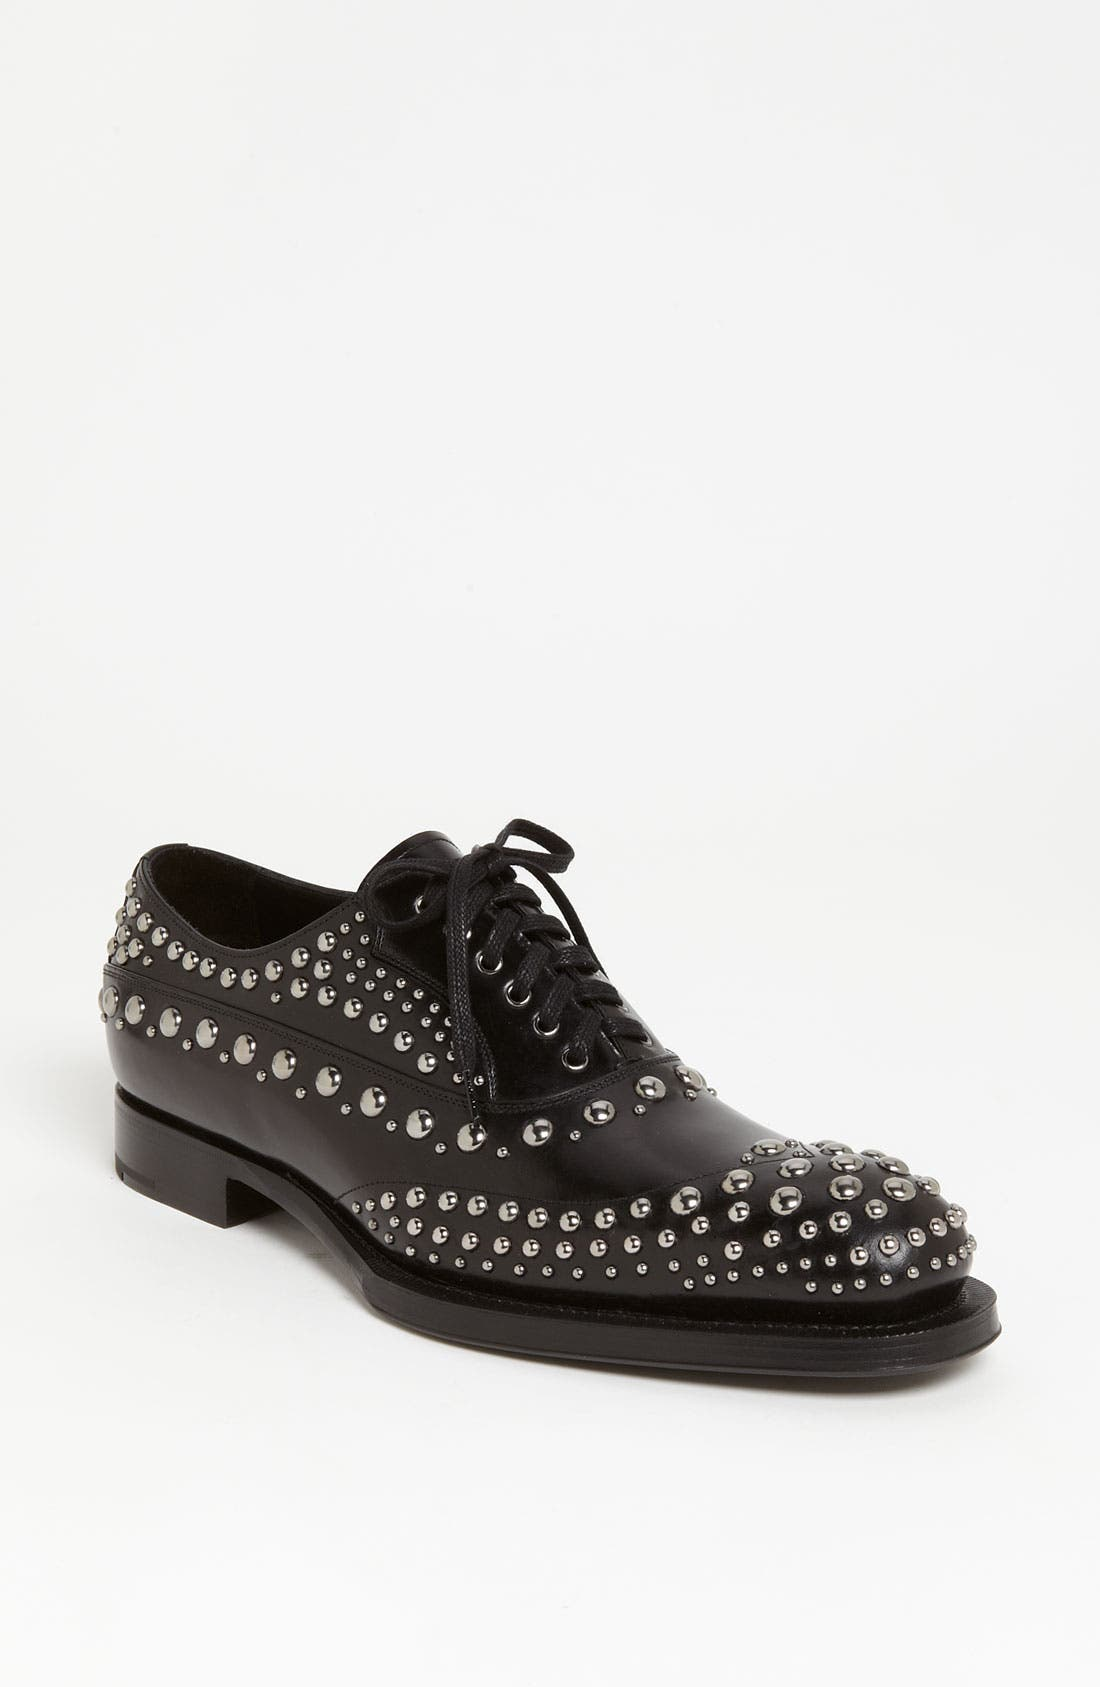 Alternate Image 1 Selected - Prada Studded Oxford